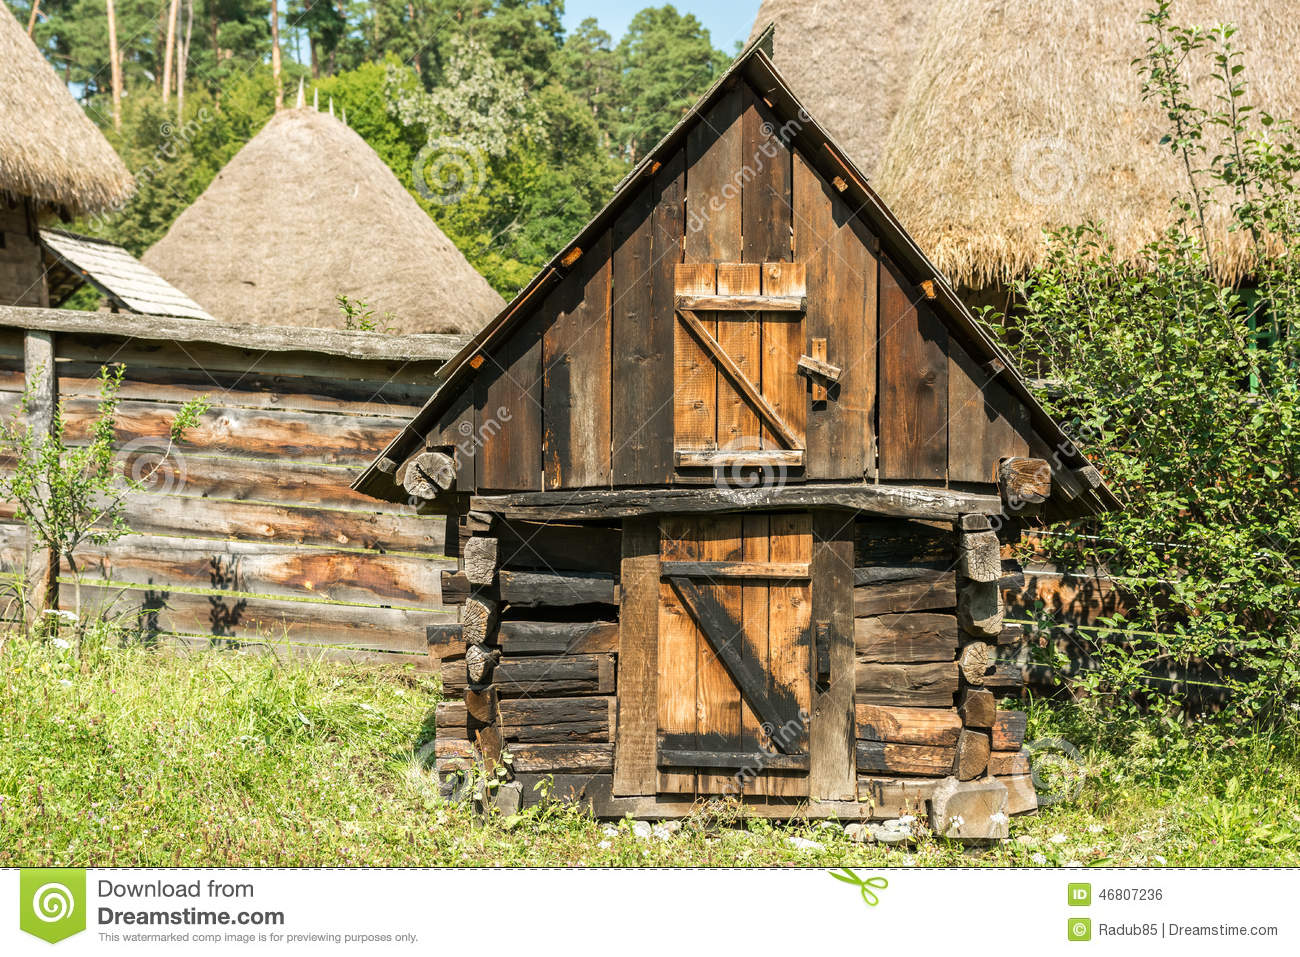 Watch moreover Medieval Bundle Building Pack additionally Watch likewise Ikea Small House Interior Floor Plan moreover Stock Photo Chicken Coop Old Romanian Village Image46807236. on barn house plans designs